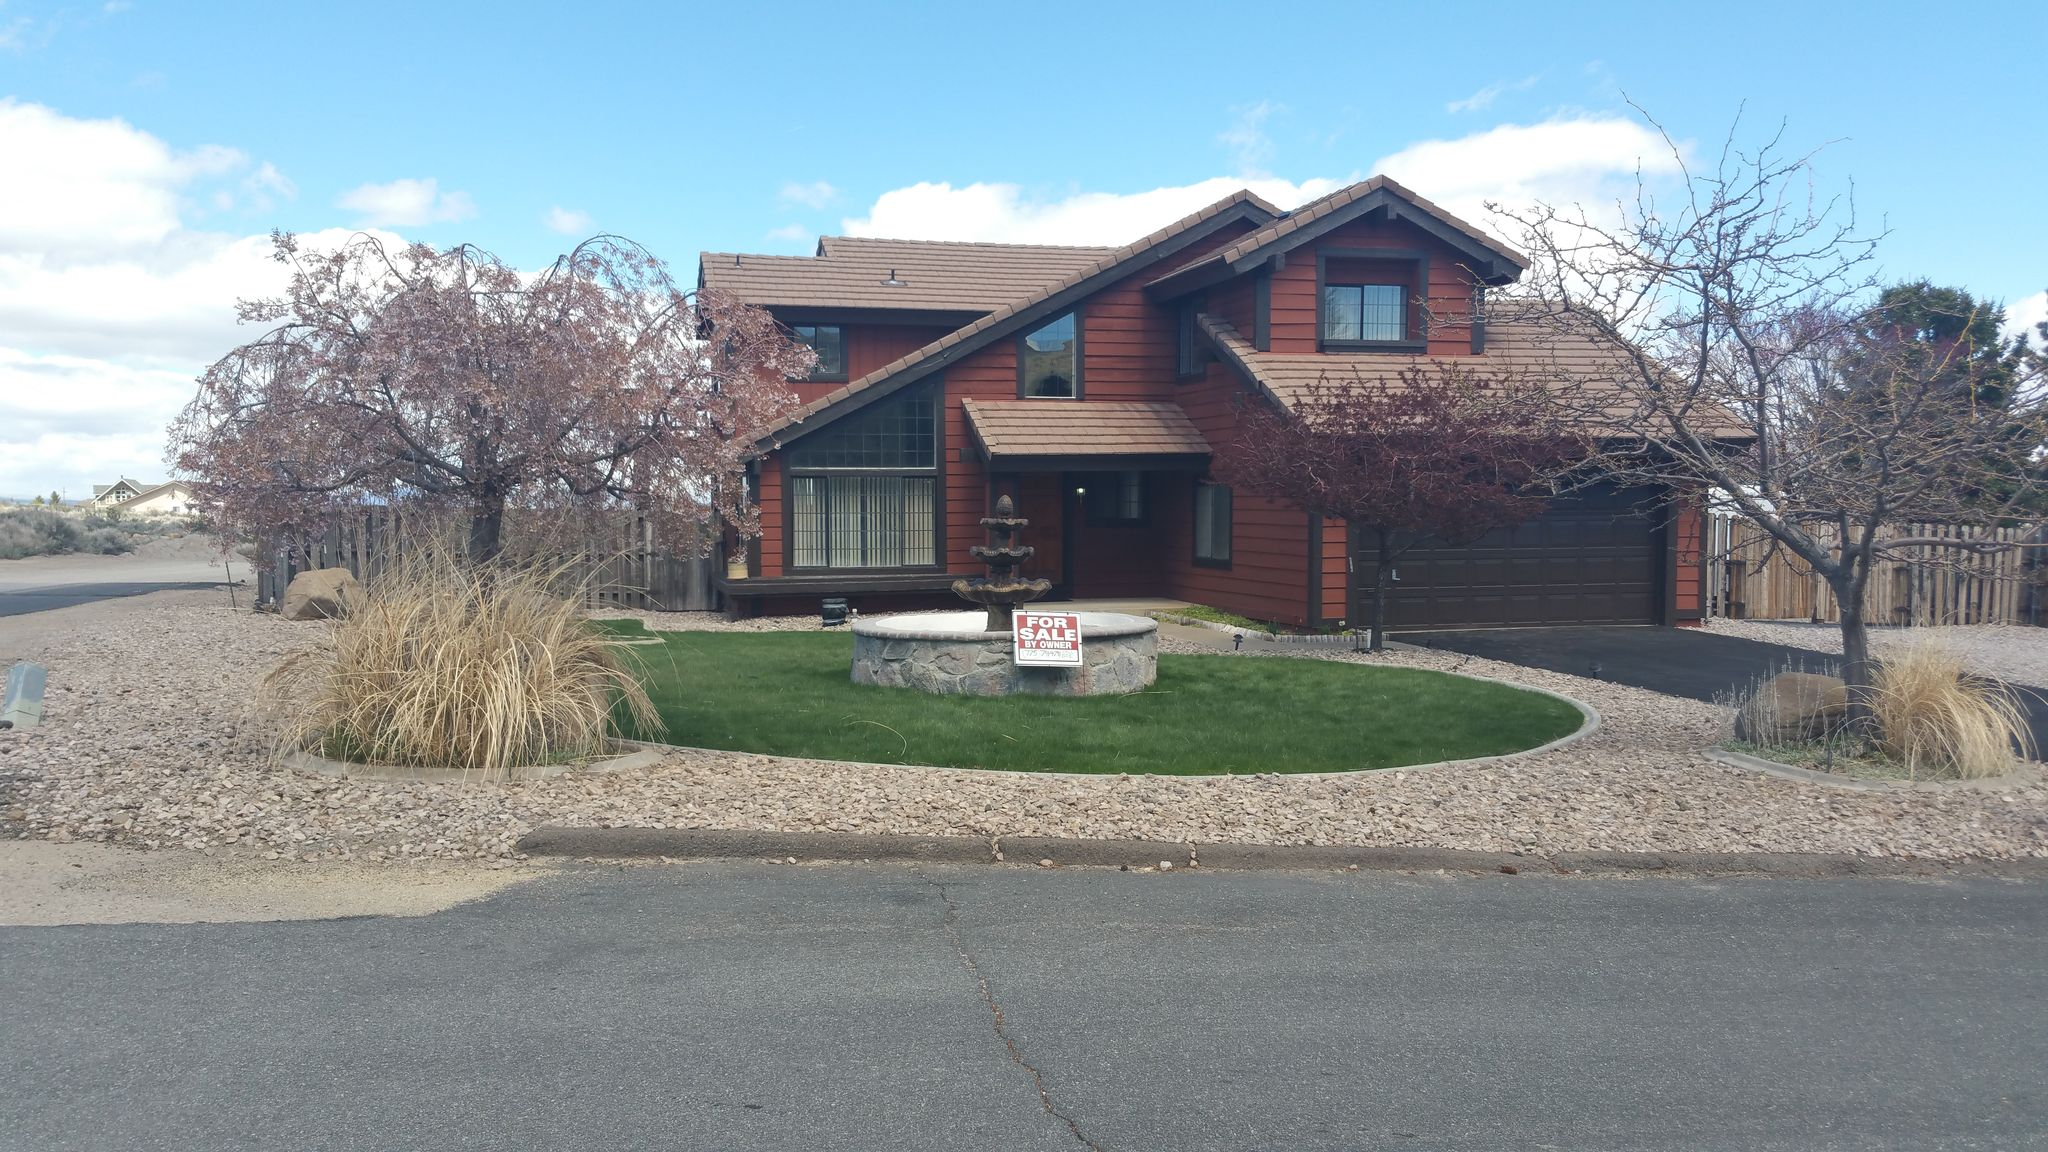 2205 stowe dr reno nv recently sold